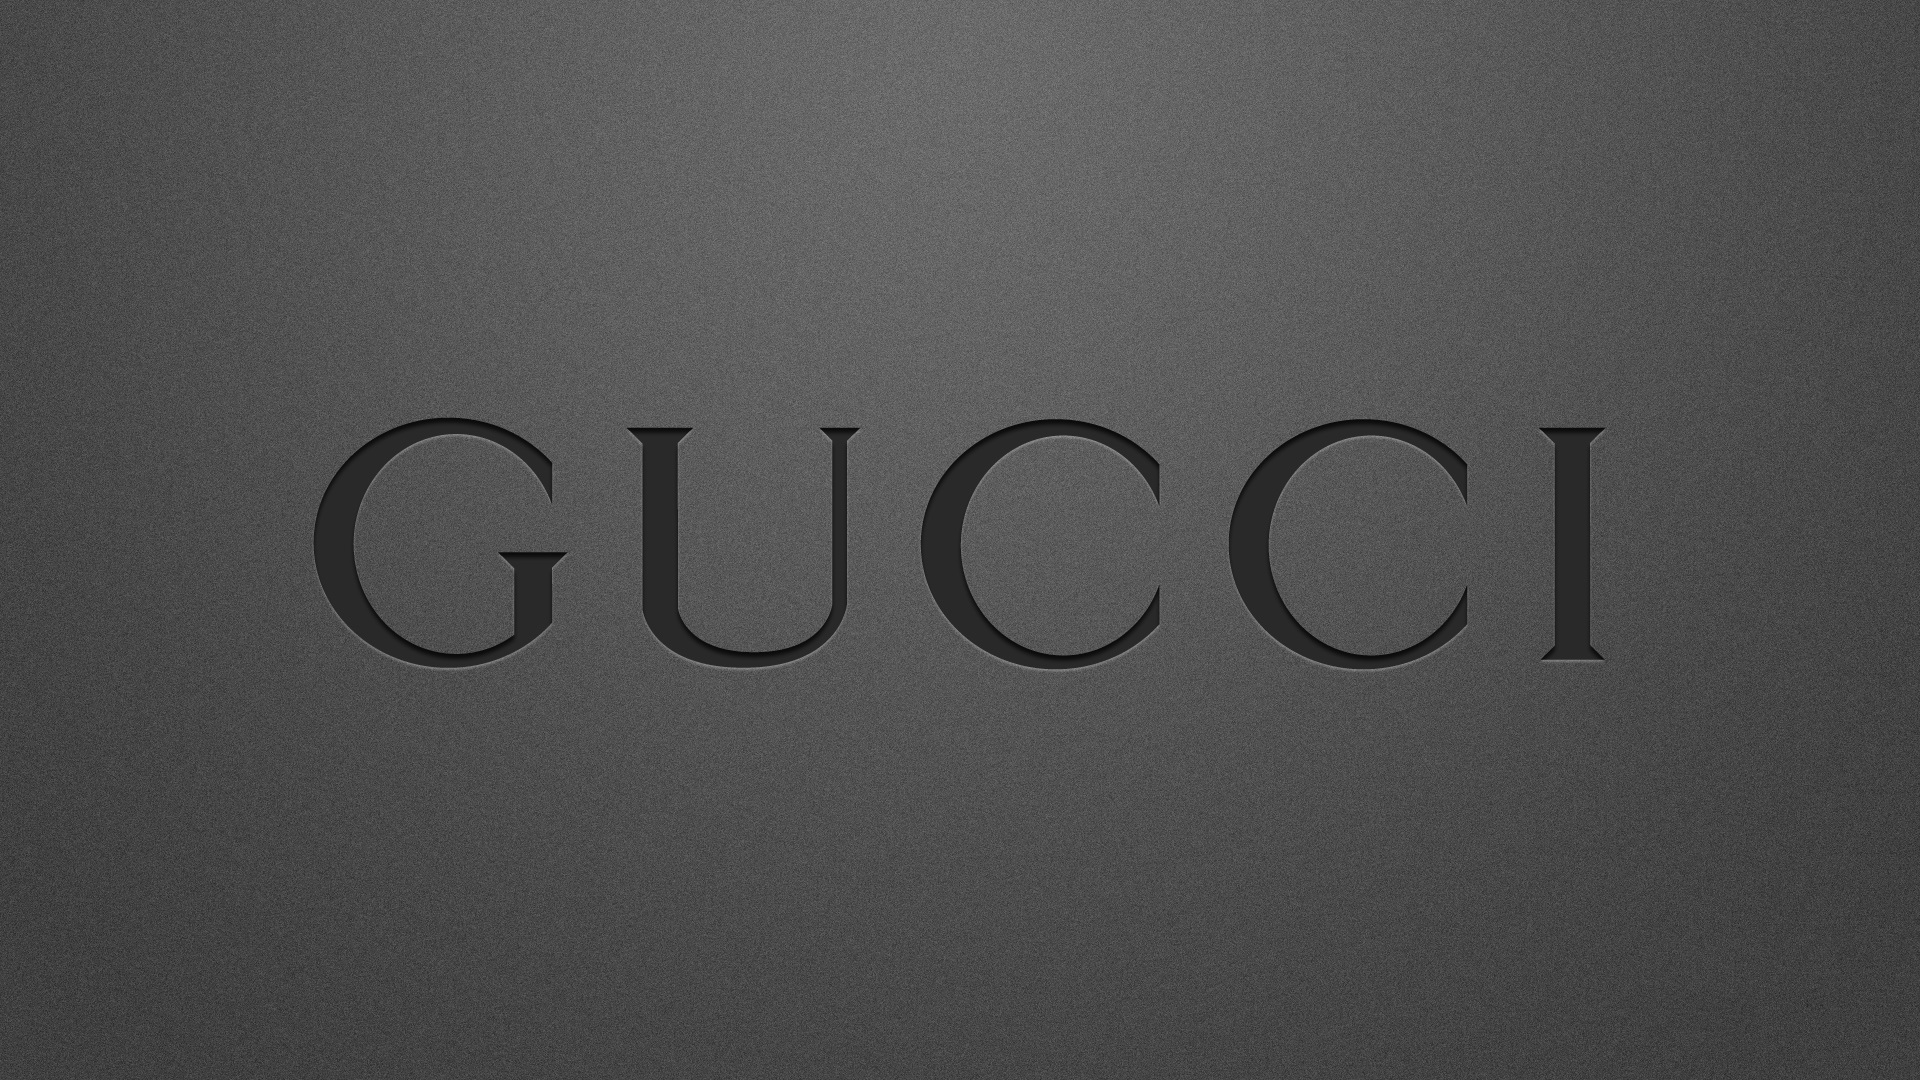 Gucci Wallpapers Pictures Hd Wallpapers 1920x1080